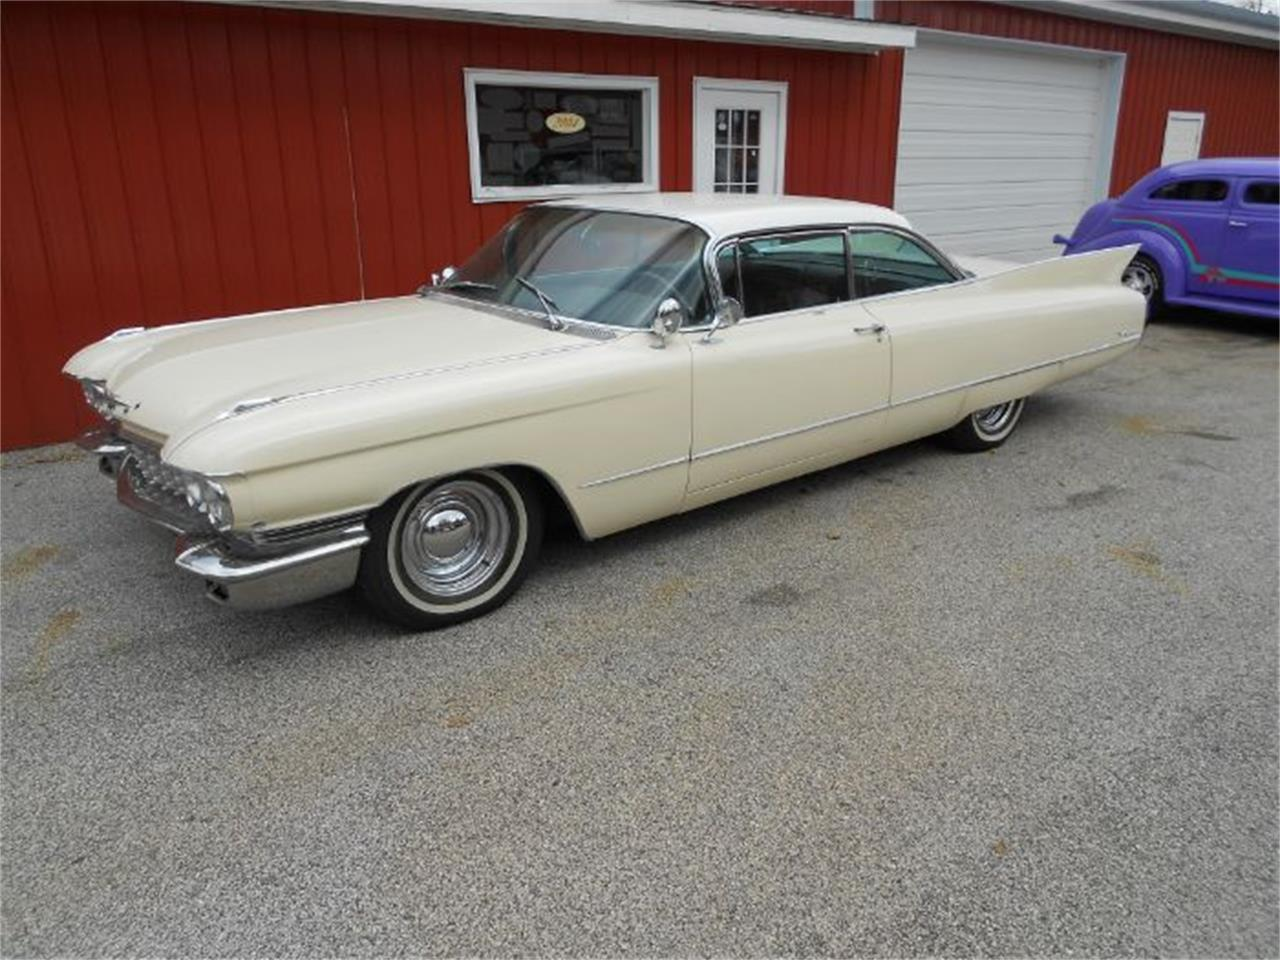 1960 Cadillac Coupe Deville For Sale Classiccars Com Cc 1116329